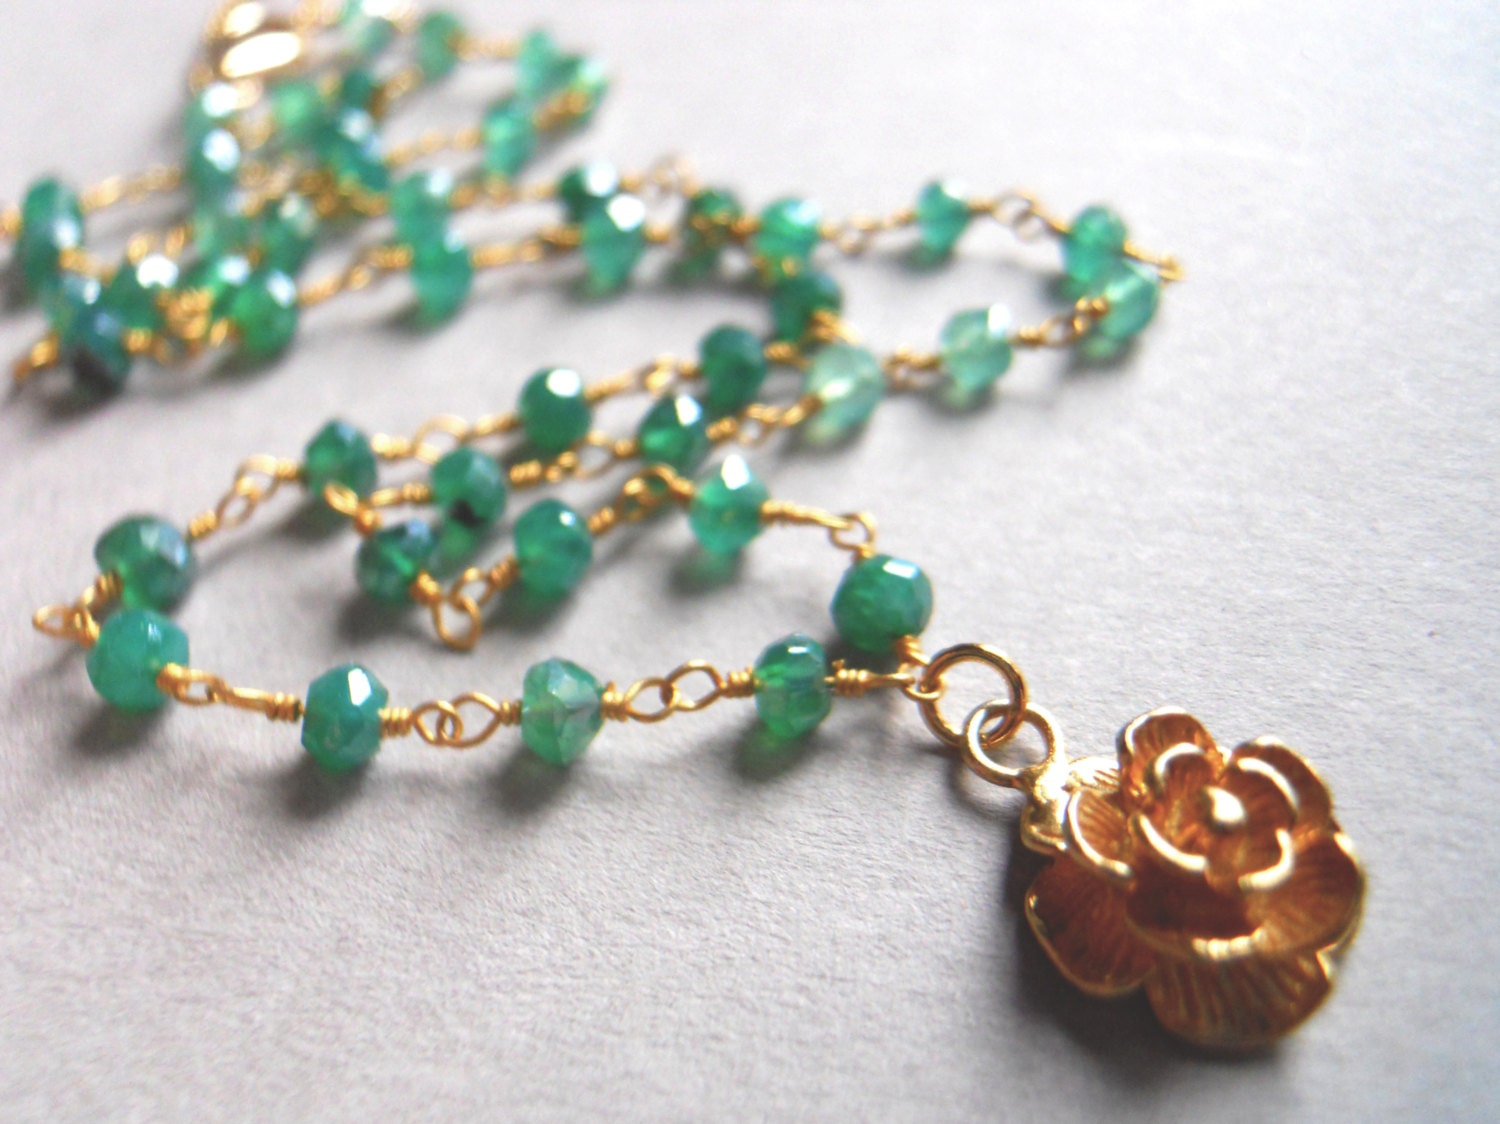 24K Gold Vermeil Rose Charm and Green Onyx Necklace / A Rose is a Rose - $125.00 USD